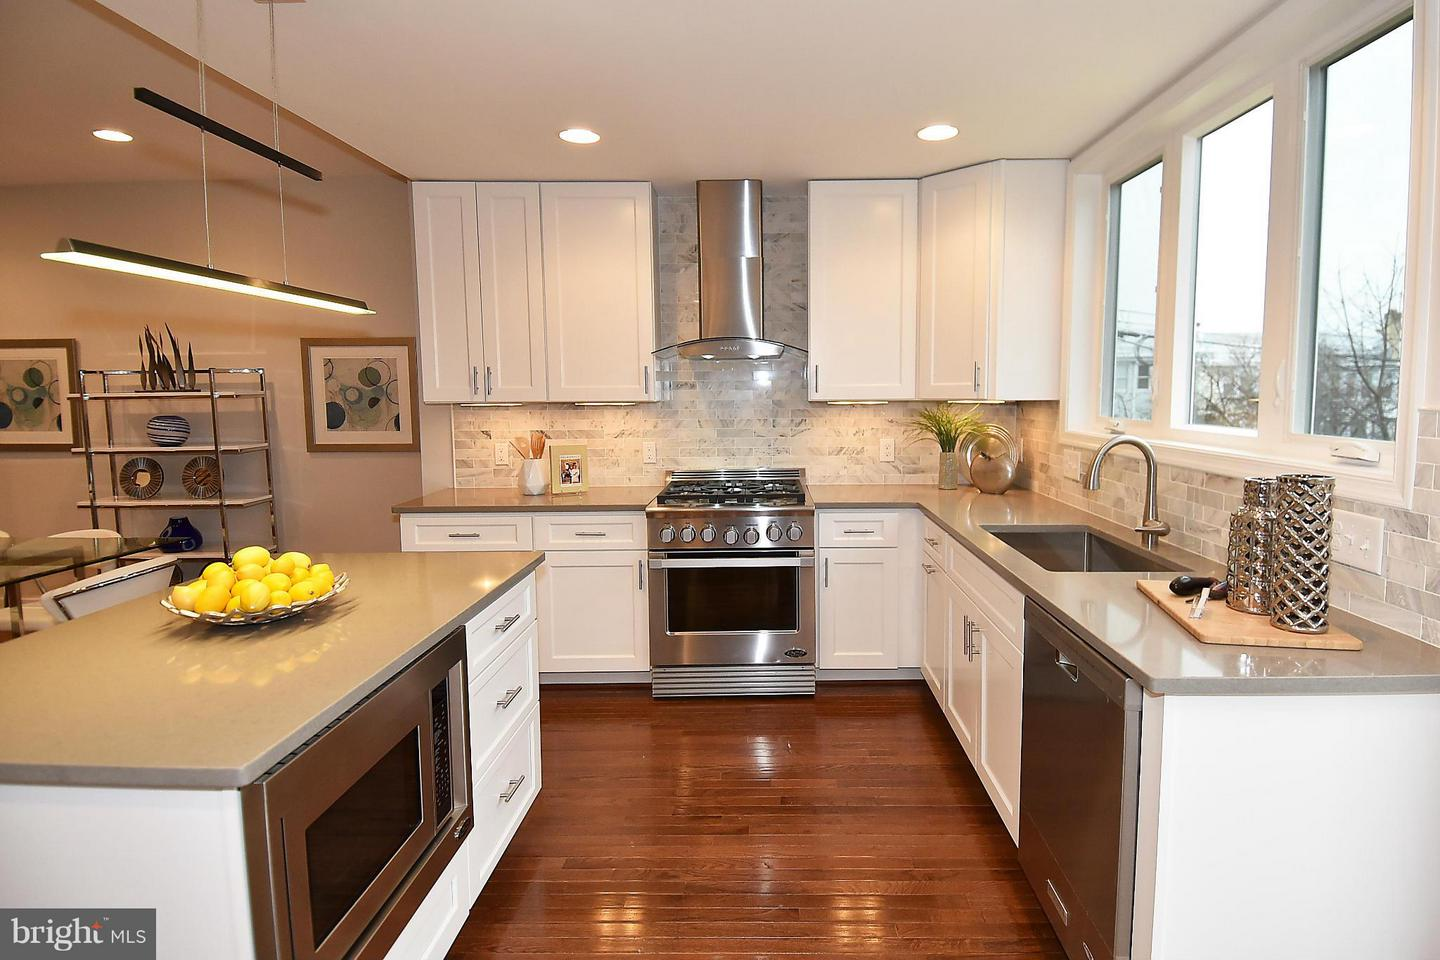 Additional photo for property listing at 823 Emerson St NW 823 Emerson St NW Washington, District Of Columbia 20011 United States